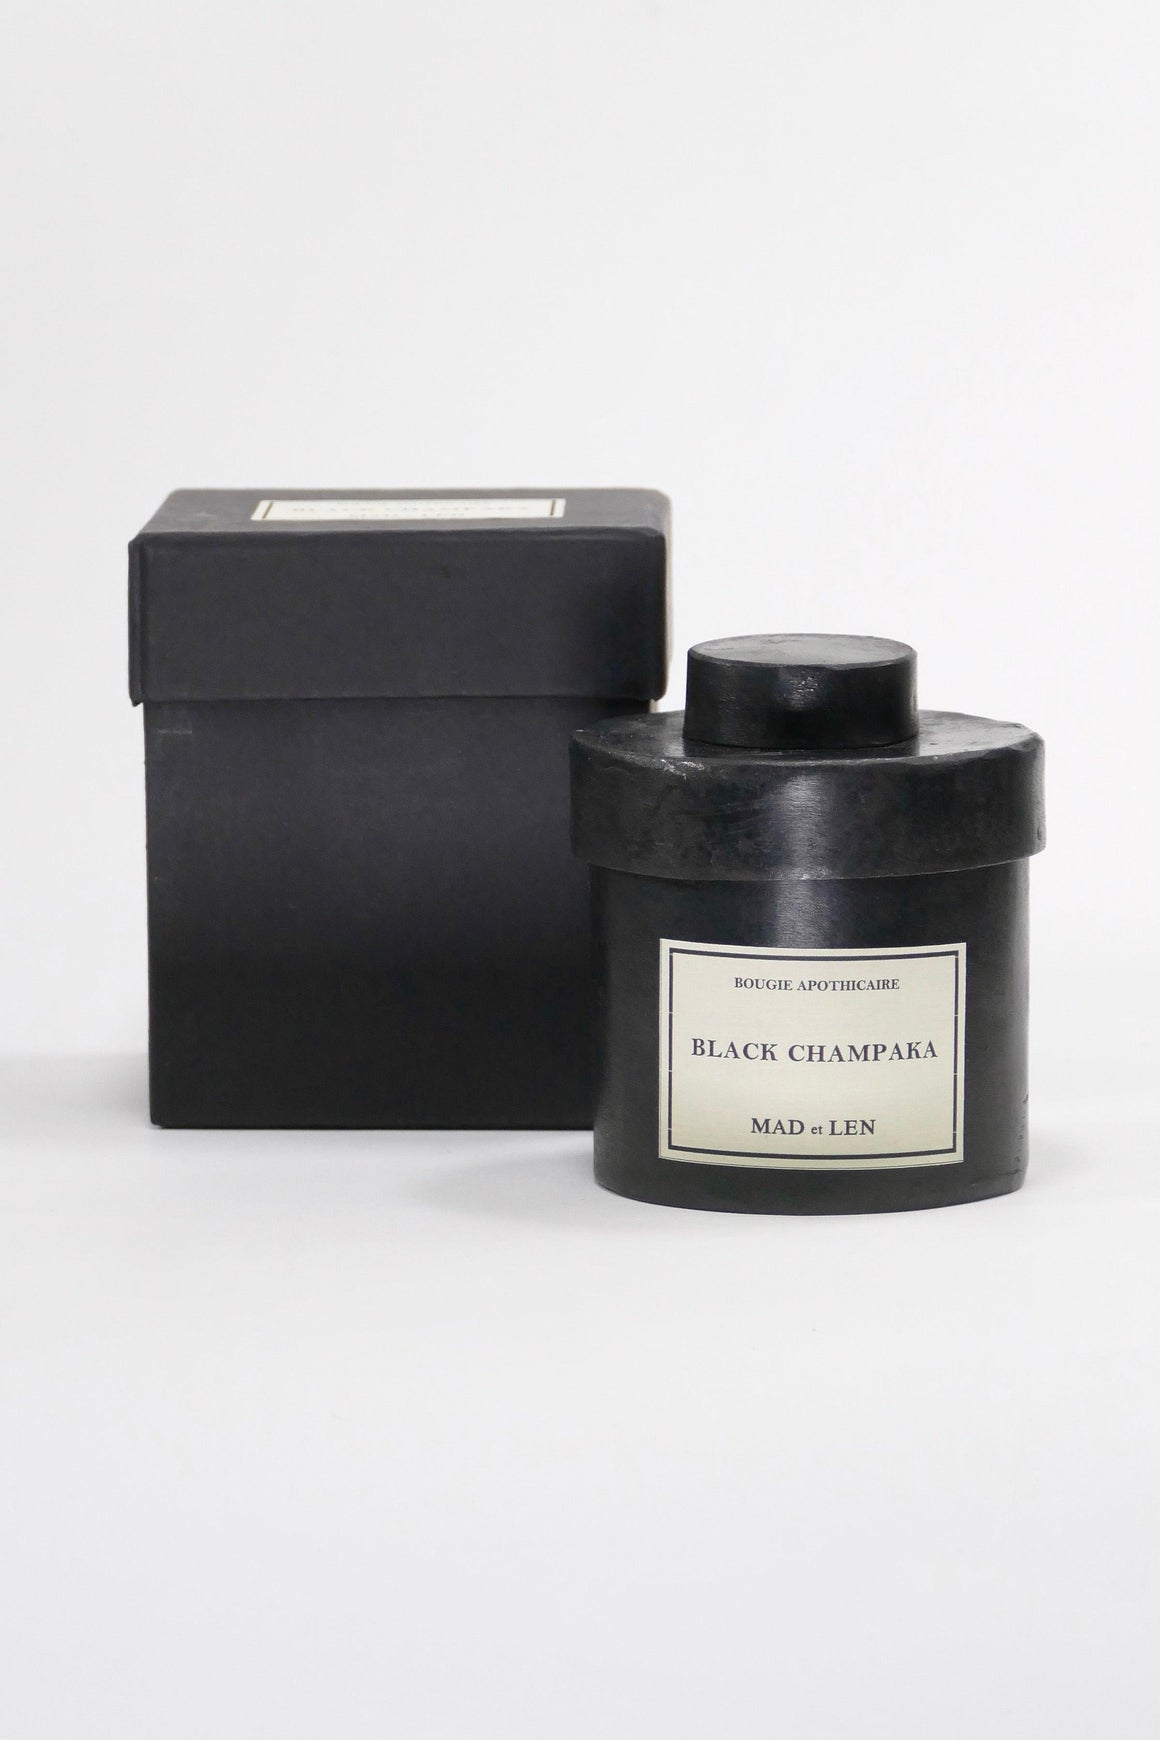 Mad et Len Bougie Apothicaire Black Champaka Candle 300g